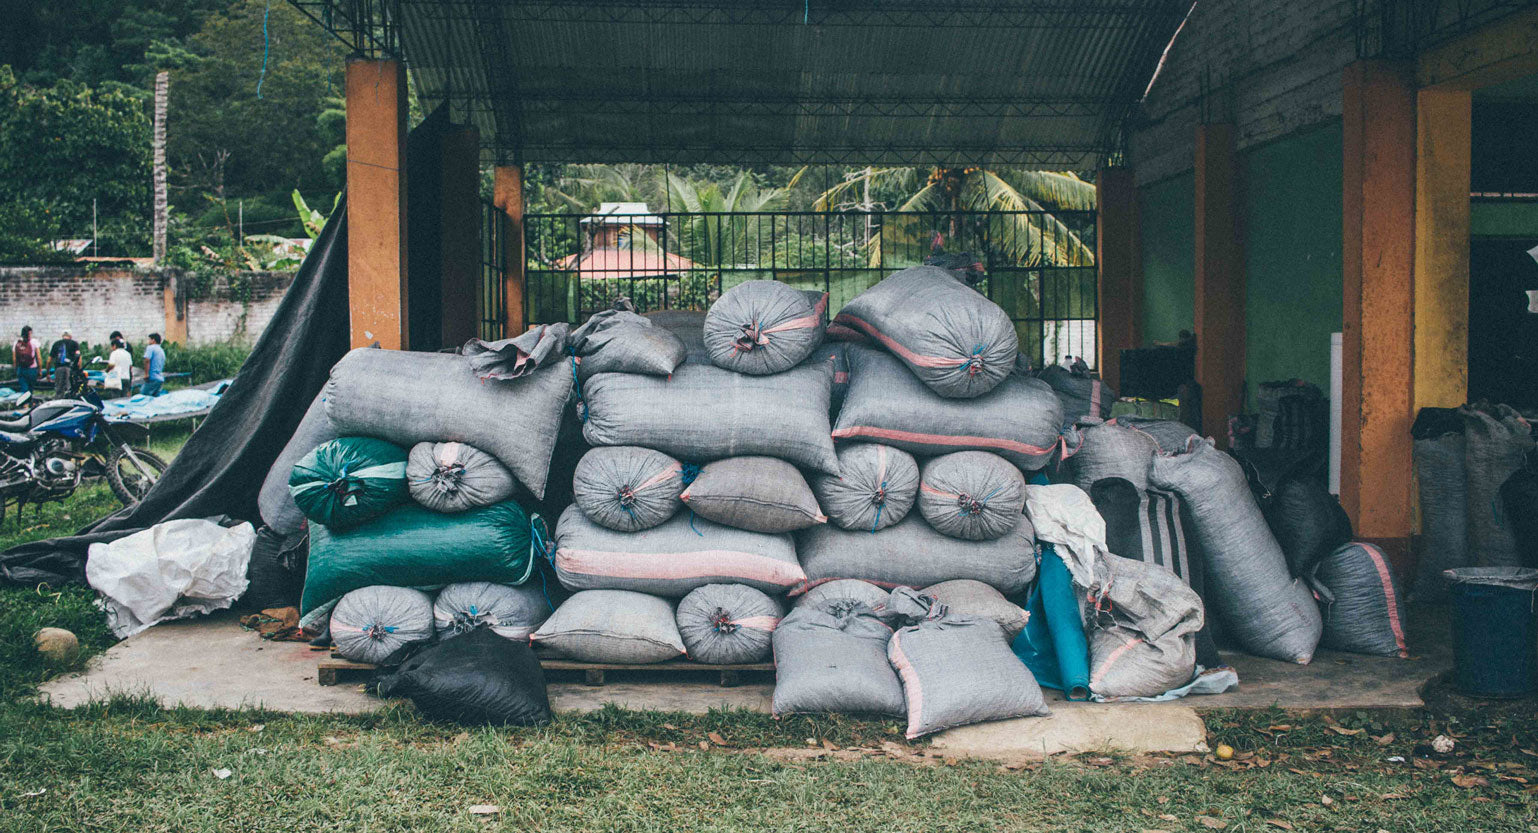 Cacao beans in sacks.